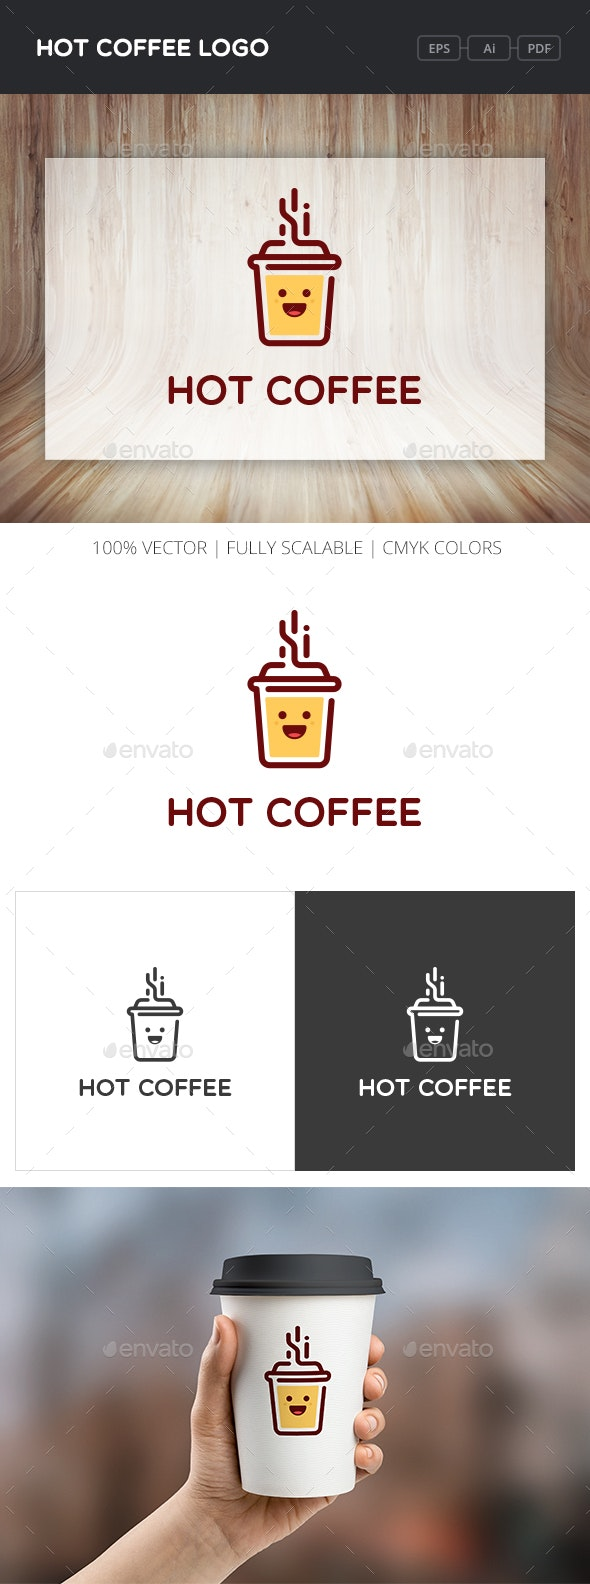 Hot Coffee Logo - Objects Logo Templates